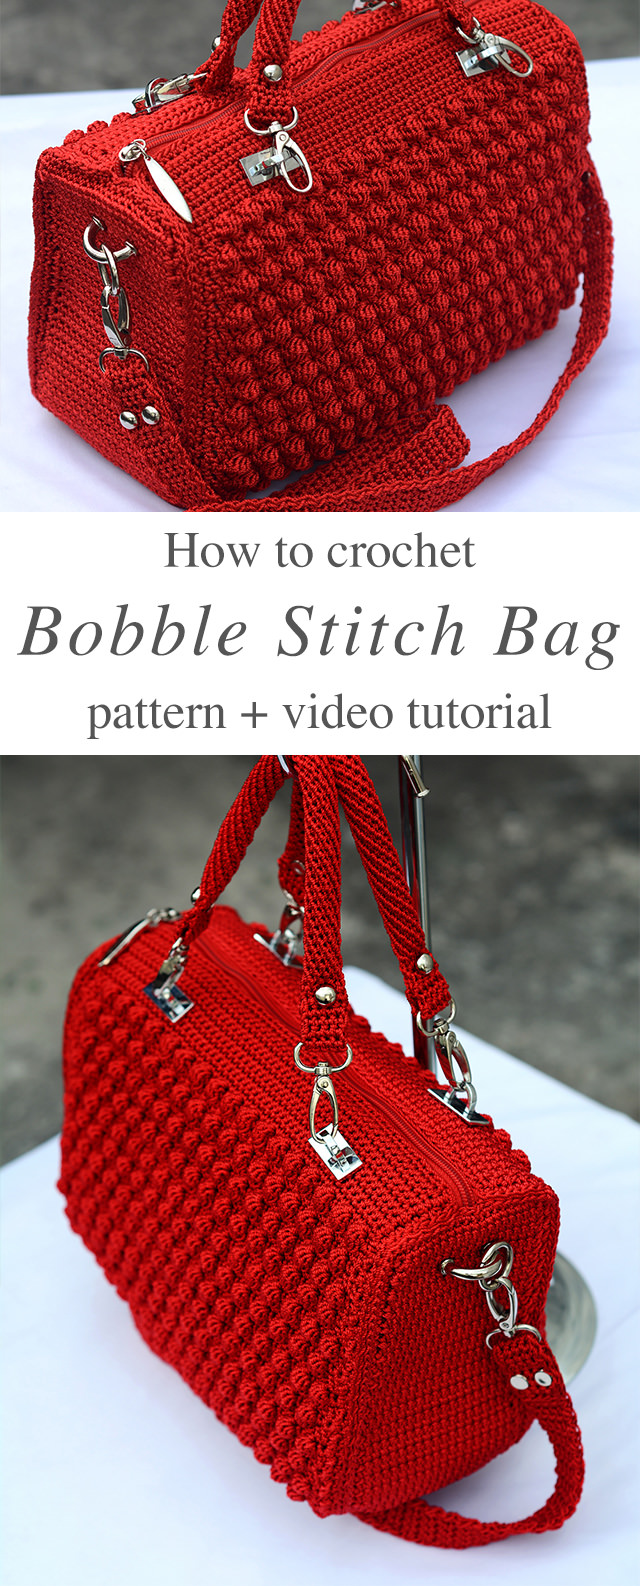 Crochet Bobble Stitch Handbag Pattern Crochetbeja